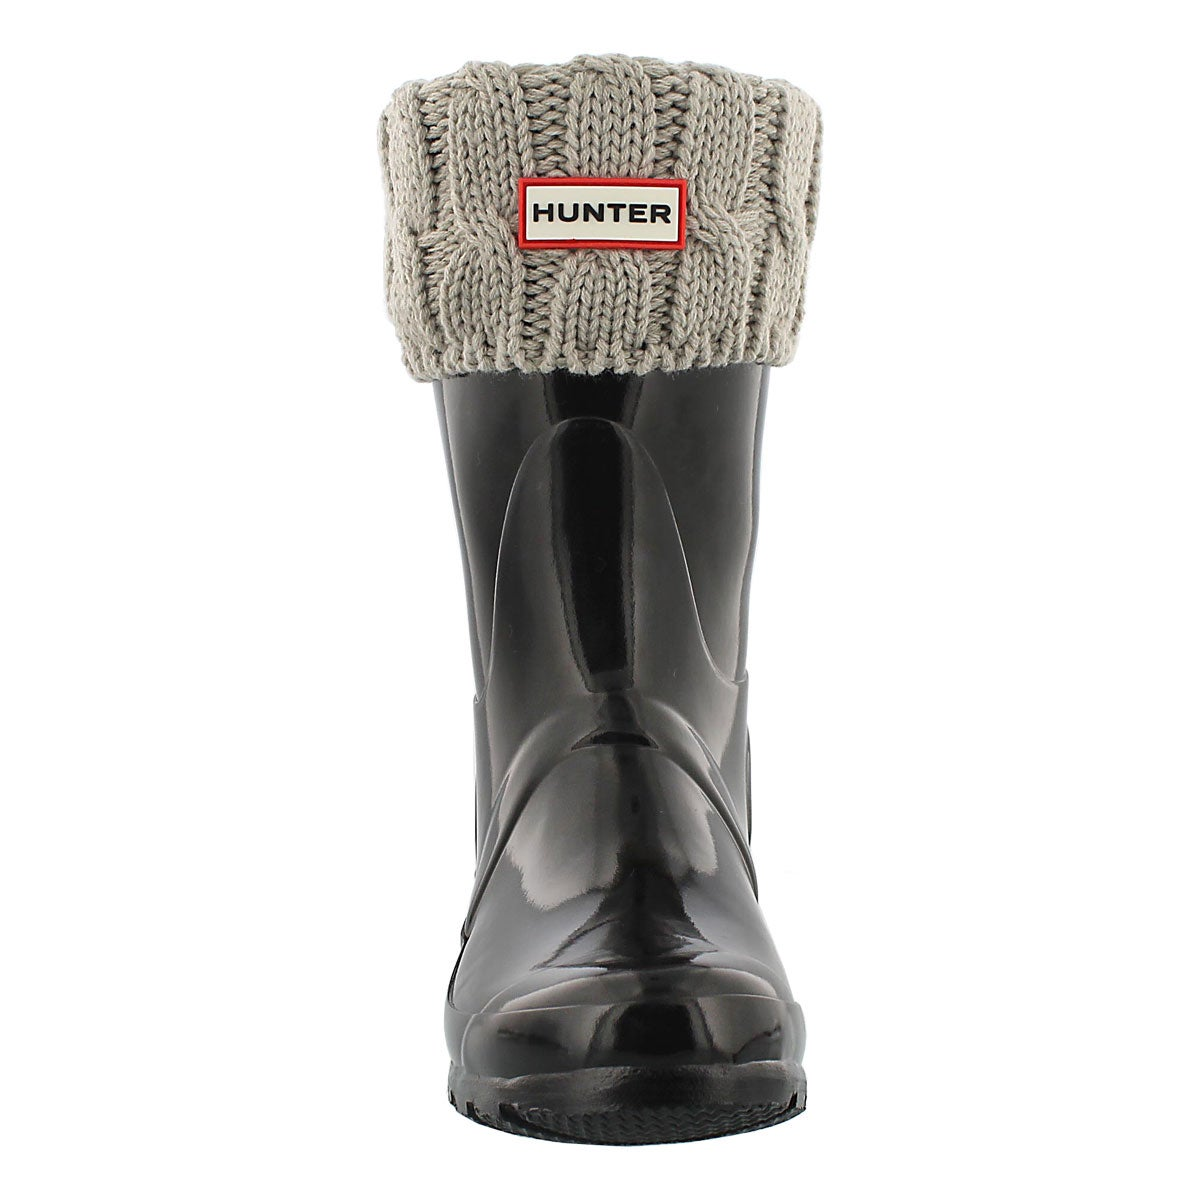 Lds 6 Stitch Cable grey short boot sock